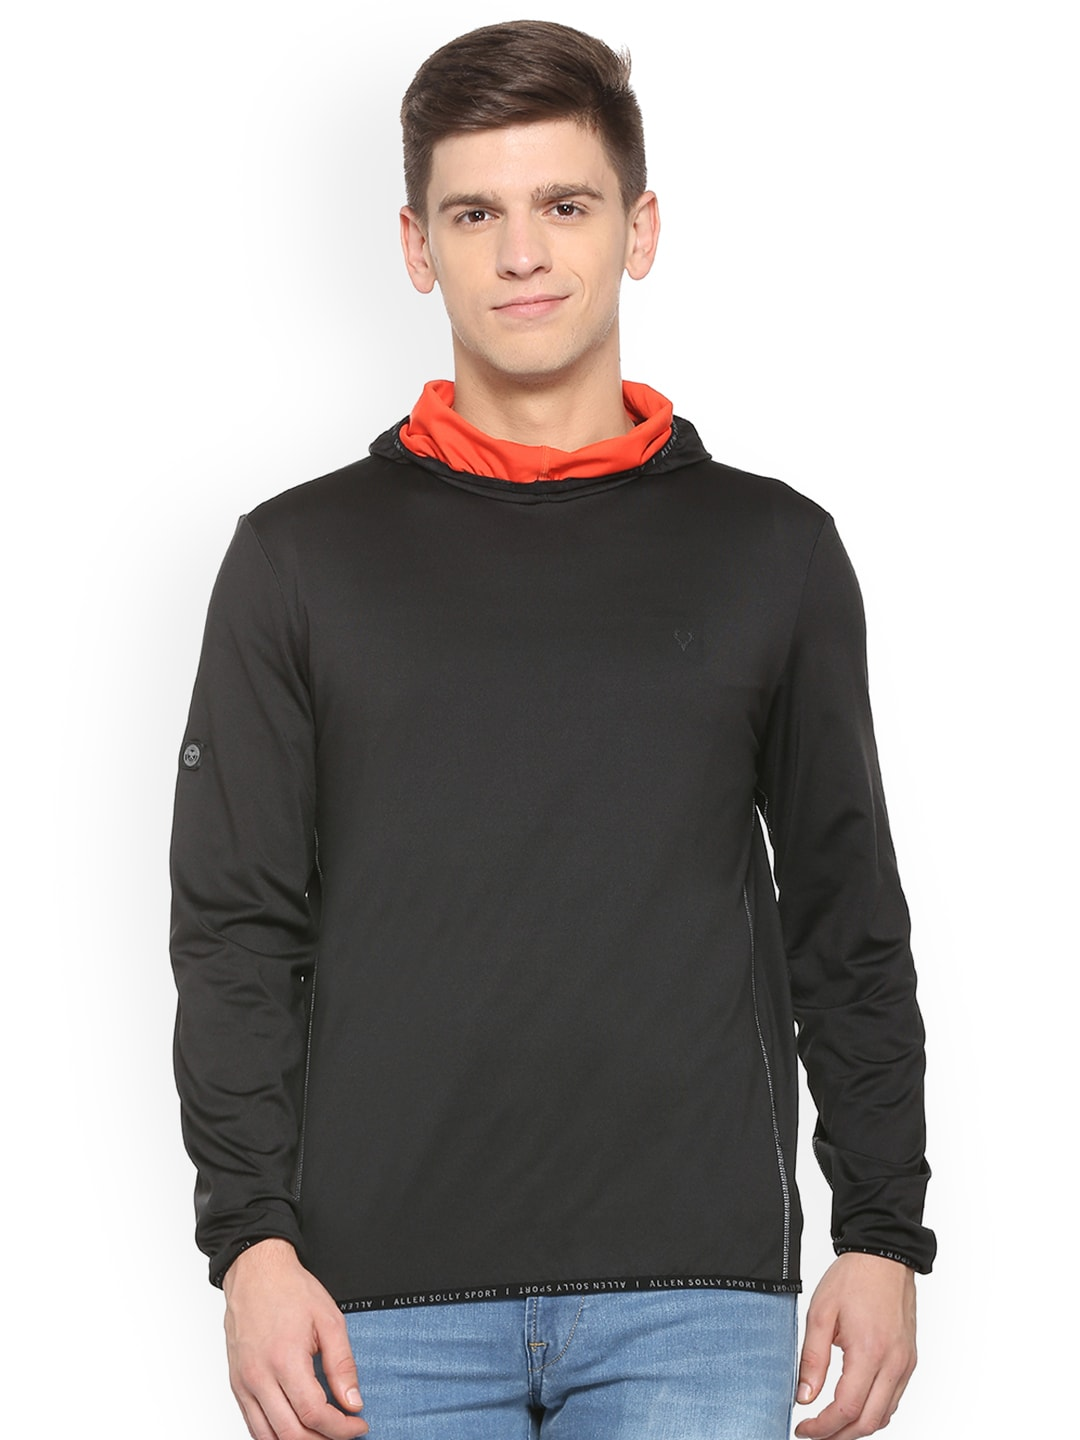 813be19c588 Solly Sport - Exclusive Solly Sport Online Store in India at Myntra